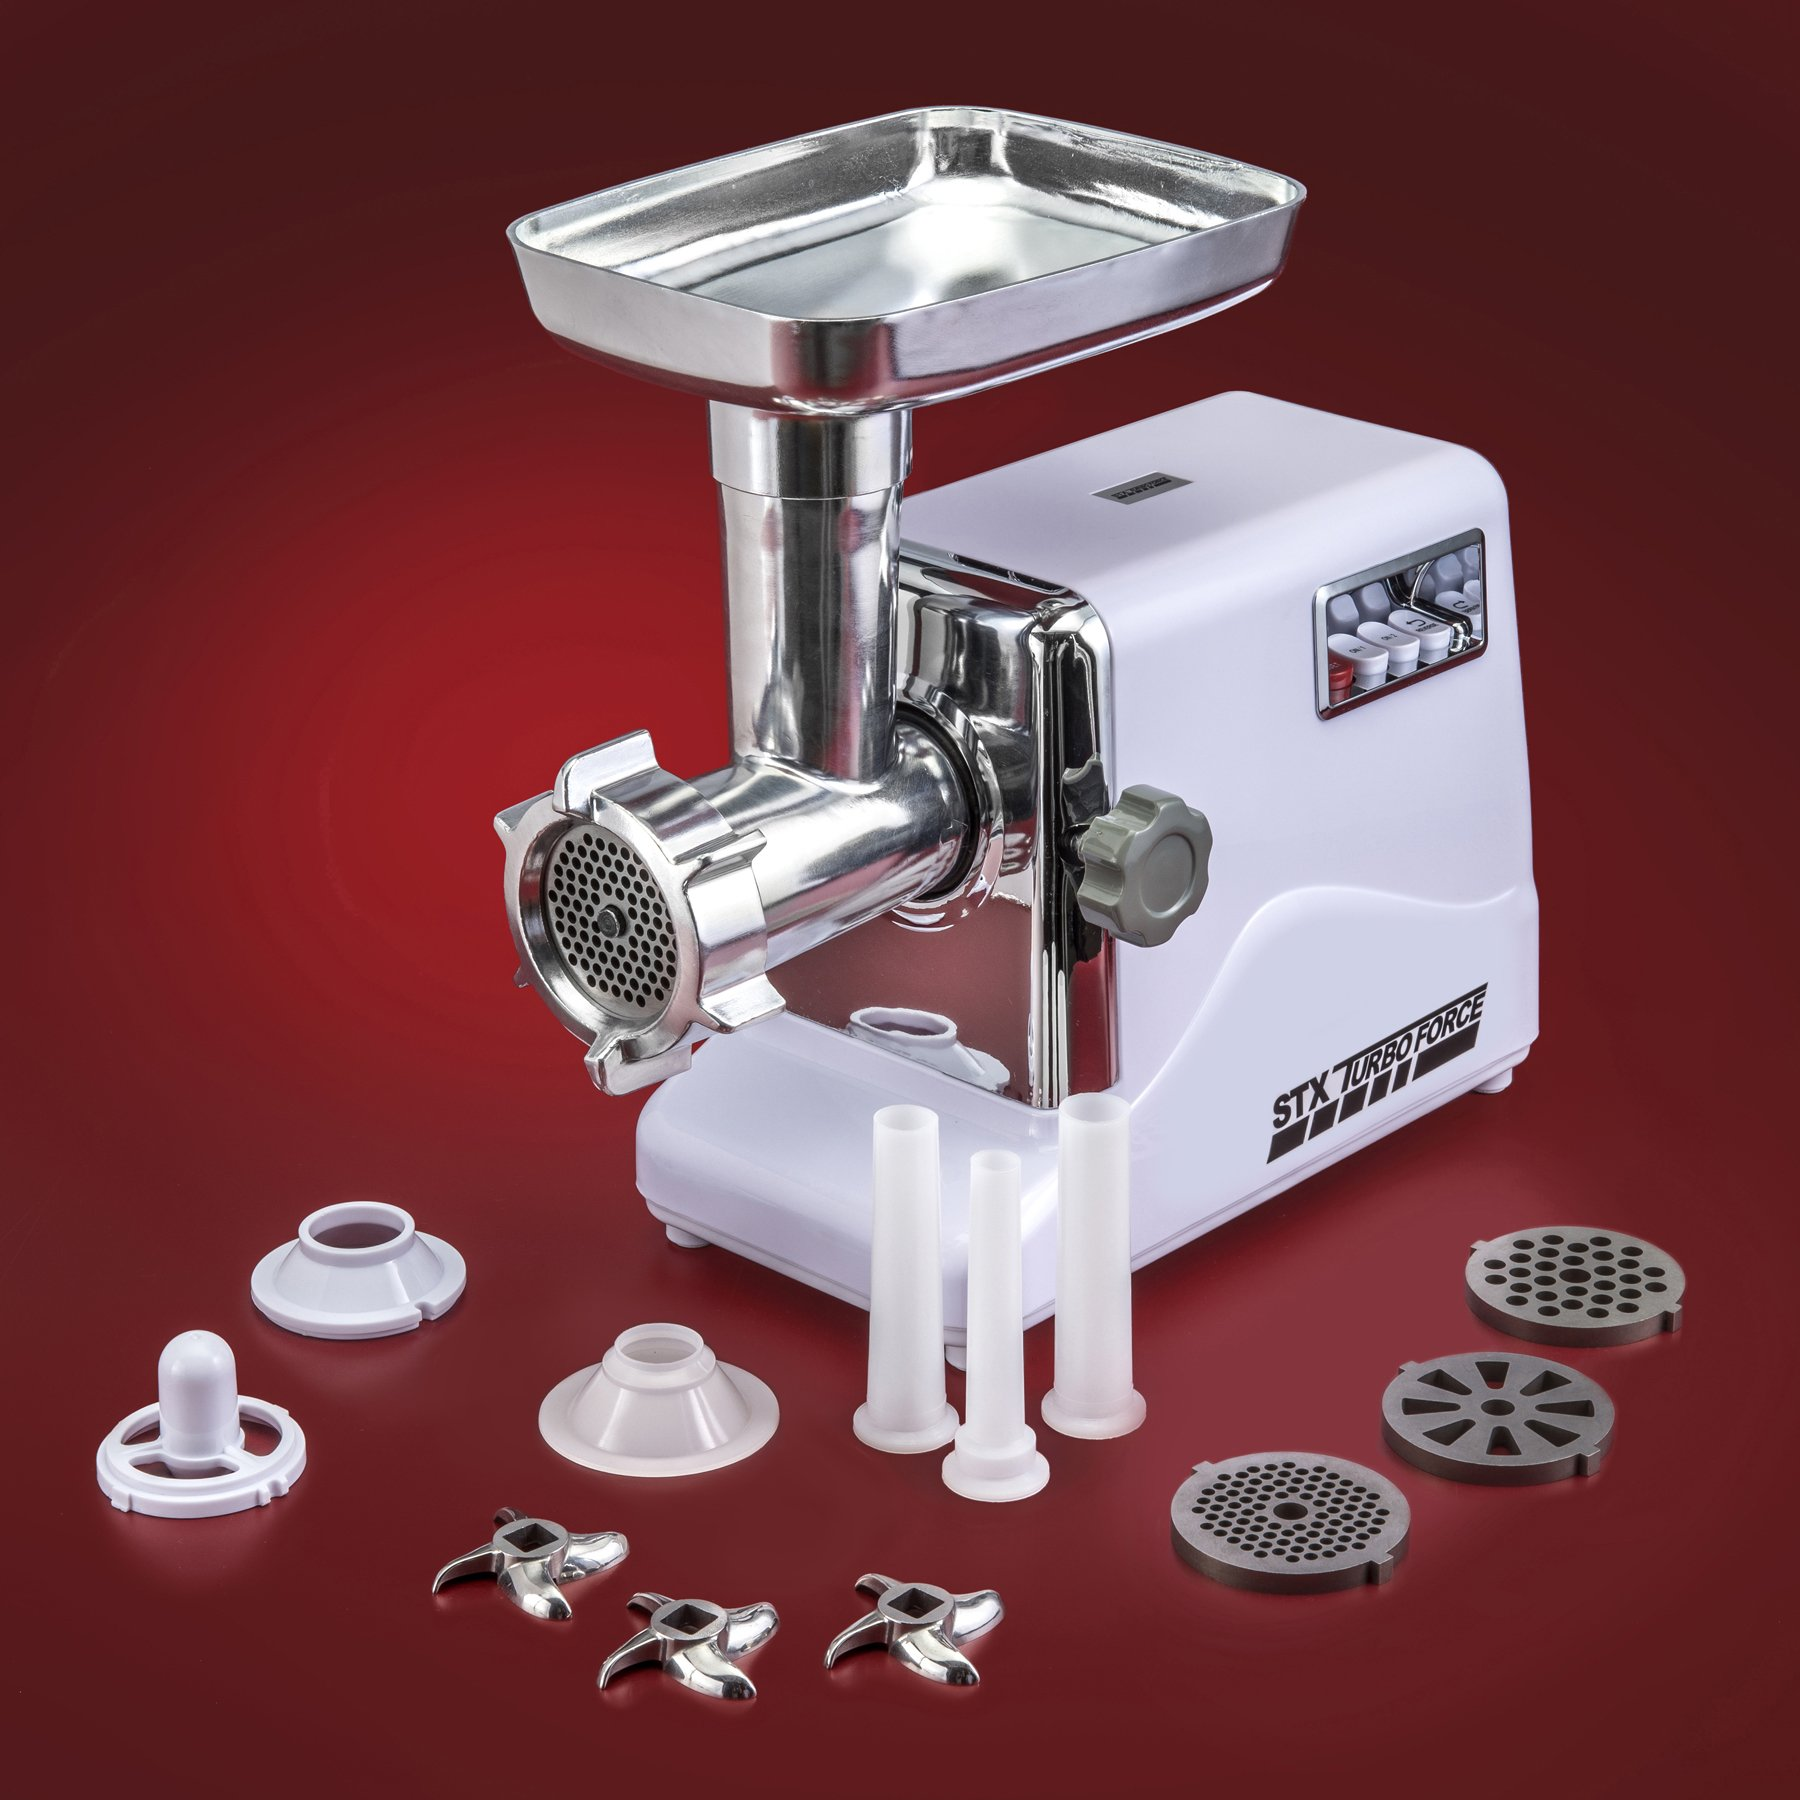 STX International STX-3000-TF Turboforce Electric Meat Grinder